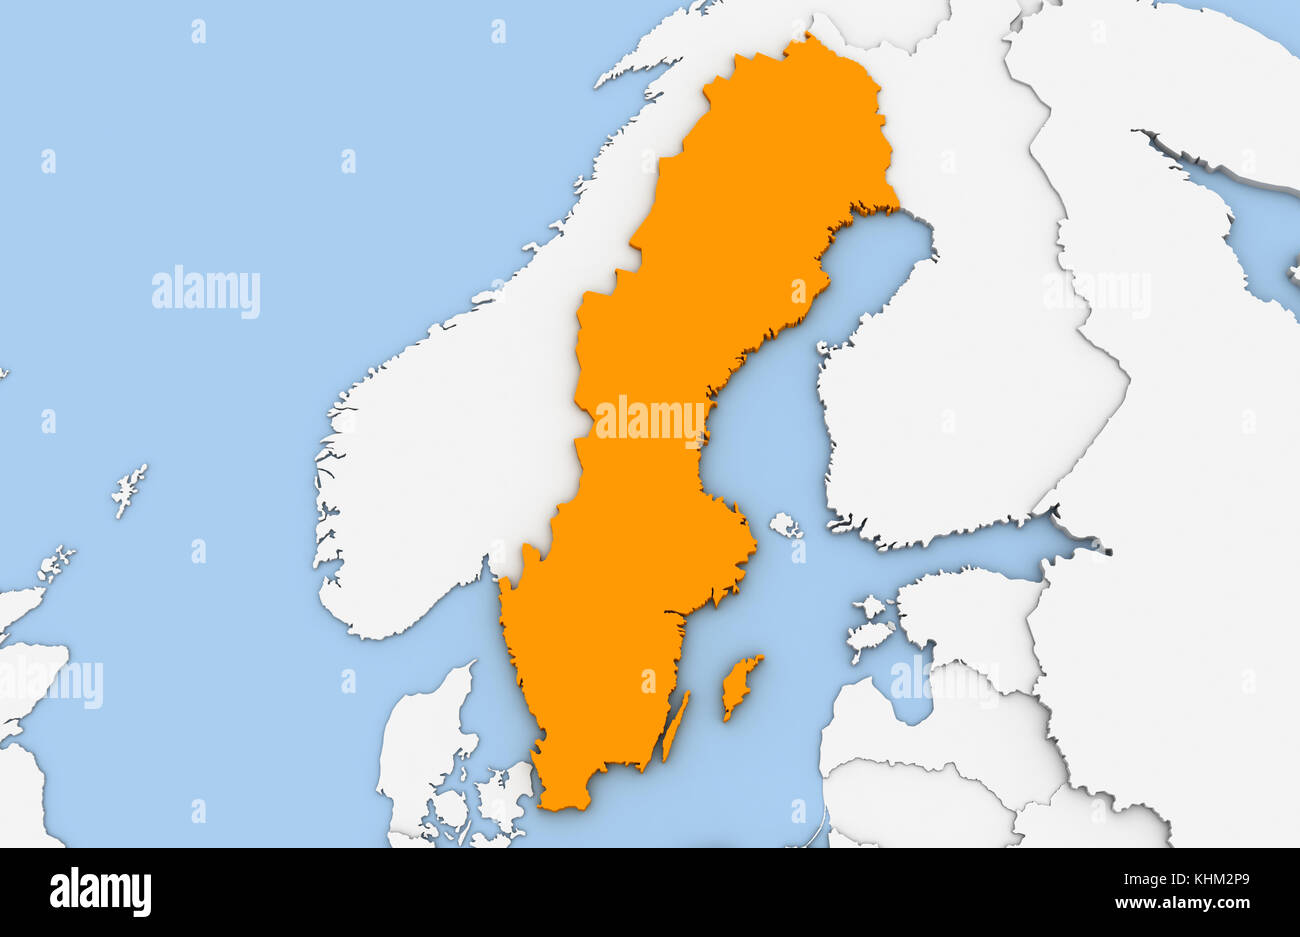 Sweden country map stock photos sweden country map stock images 3d render of abstract map of sweden highlighted in orange color stock image gumiabroncs Gallery